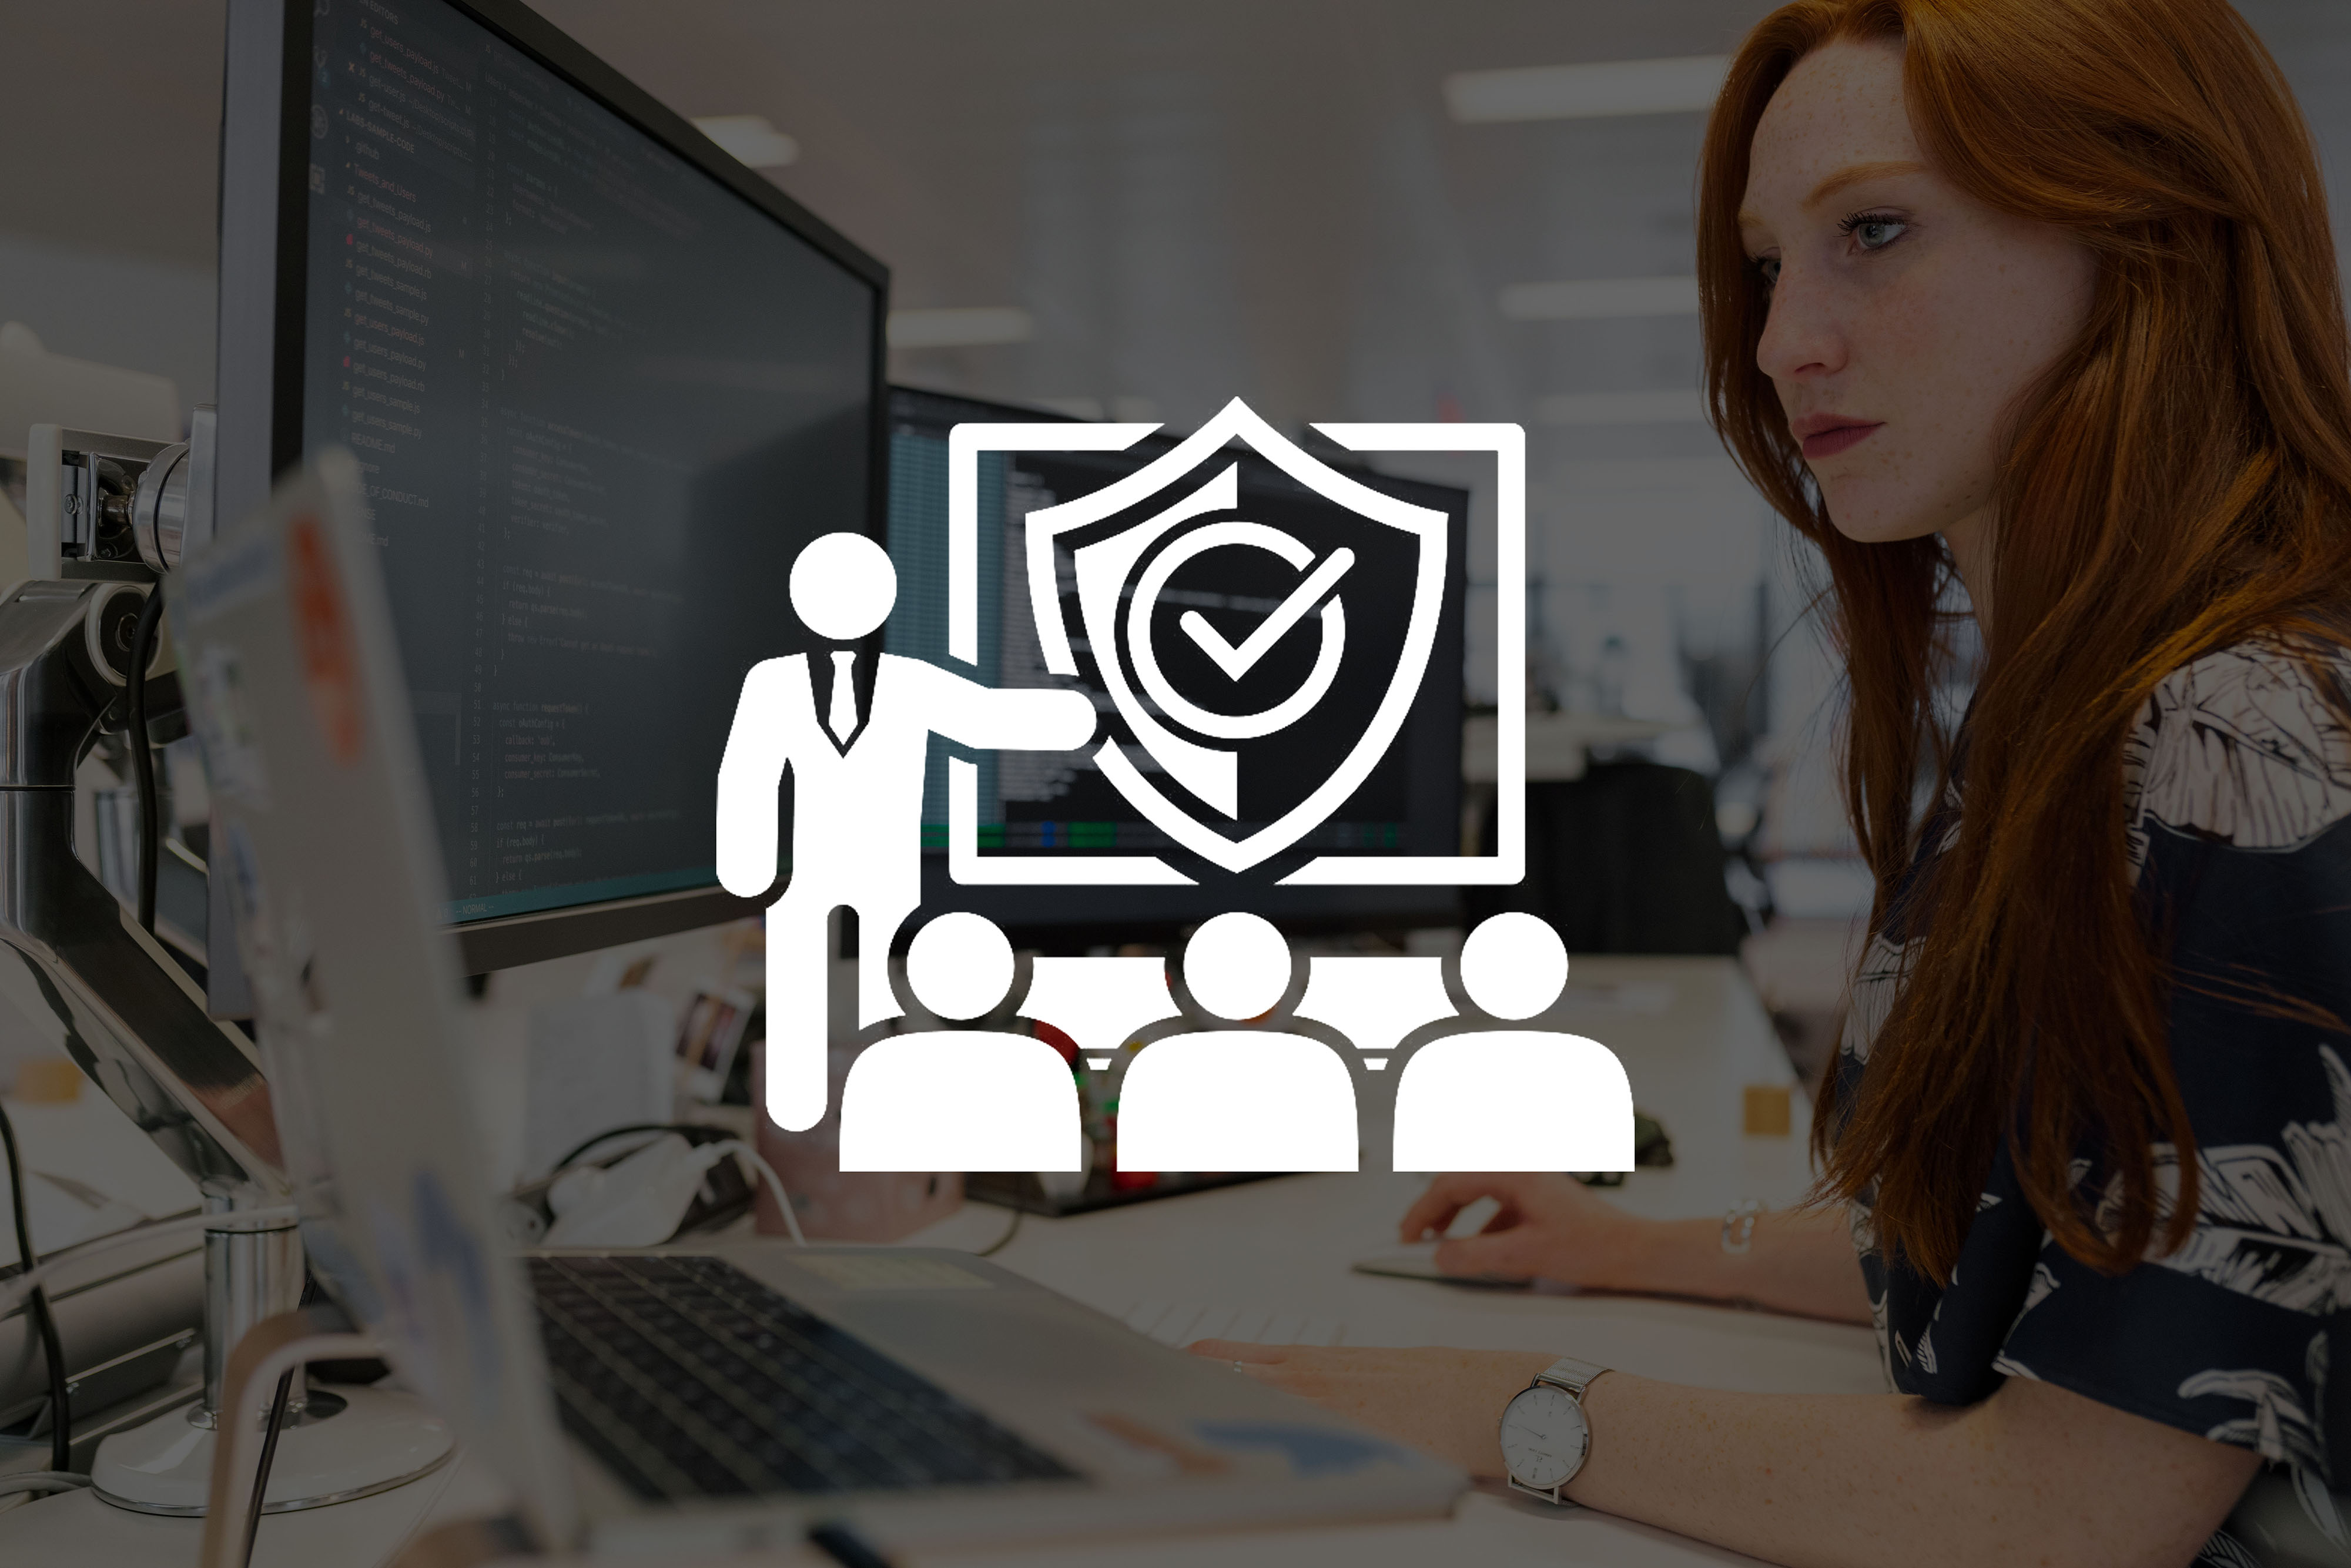 Pitfalls To Avoid With Your Security Awareness Training (SAT) Program